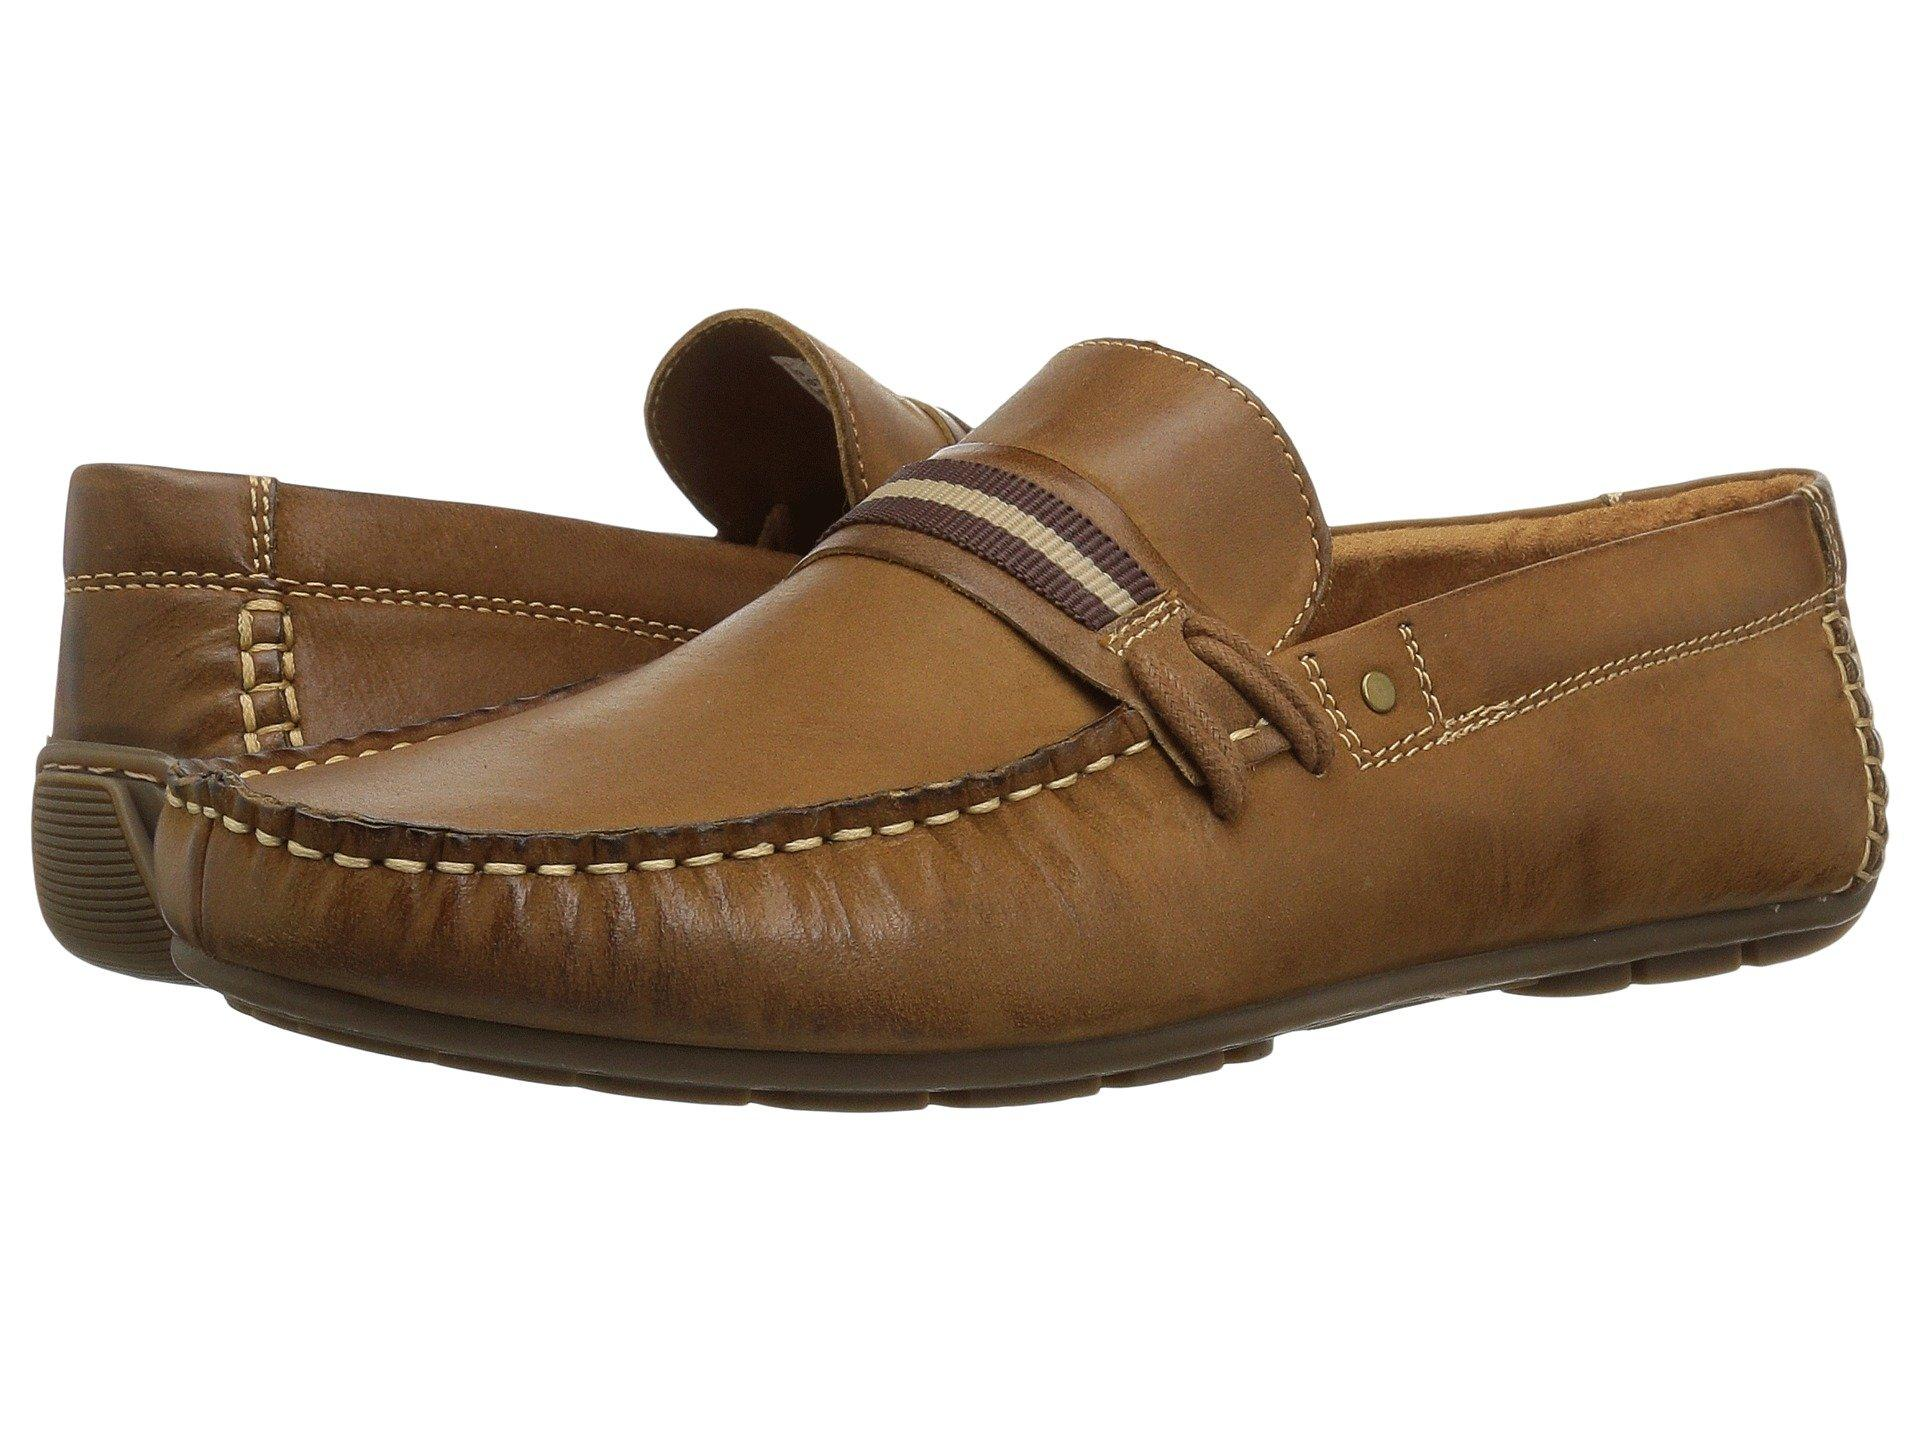 30e965bc9fa Lyst - Steve Madden Gander in Brown for Men - Save 51%